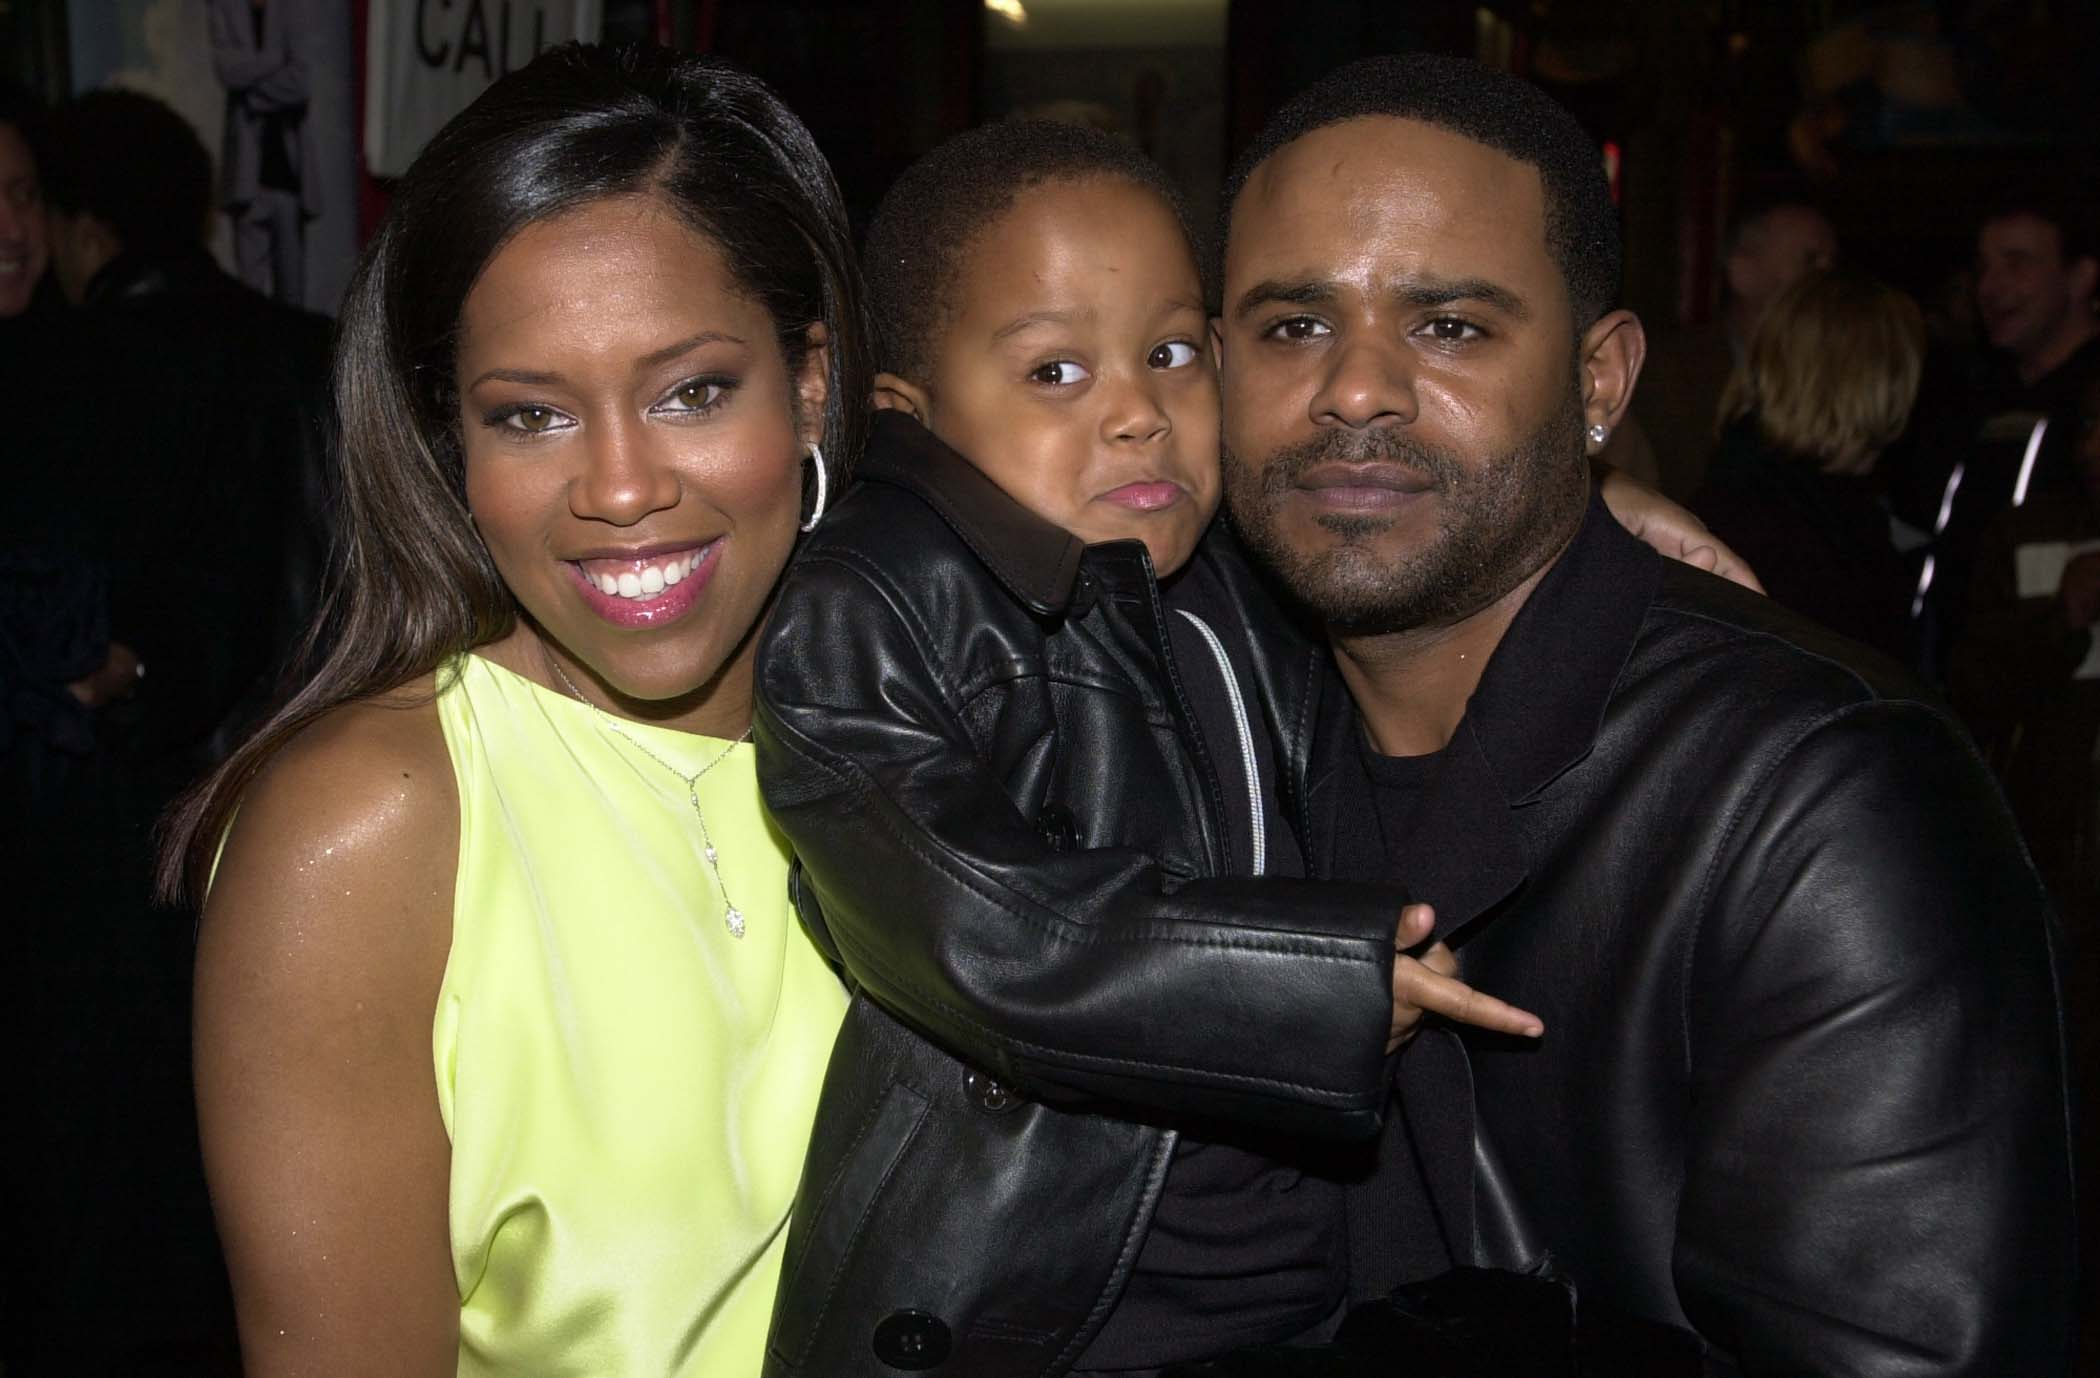 Regina King, Ian Alexander Jr and Ian Alexander during Down to Earth Premiere, 2001 | Photo: Getty Images